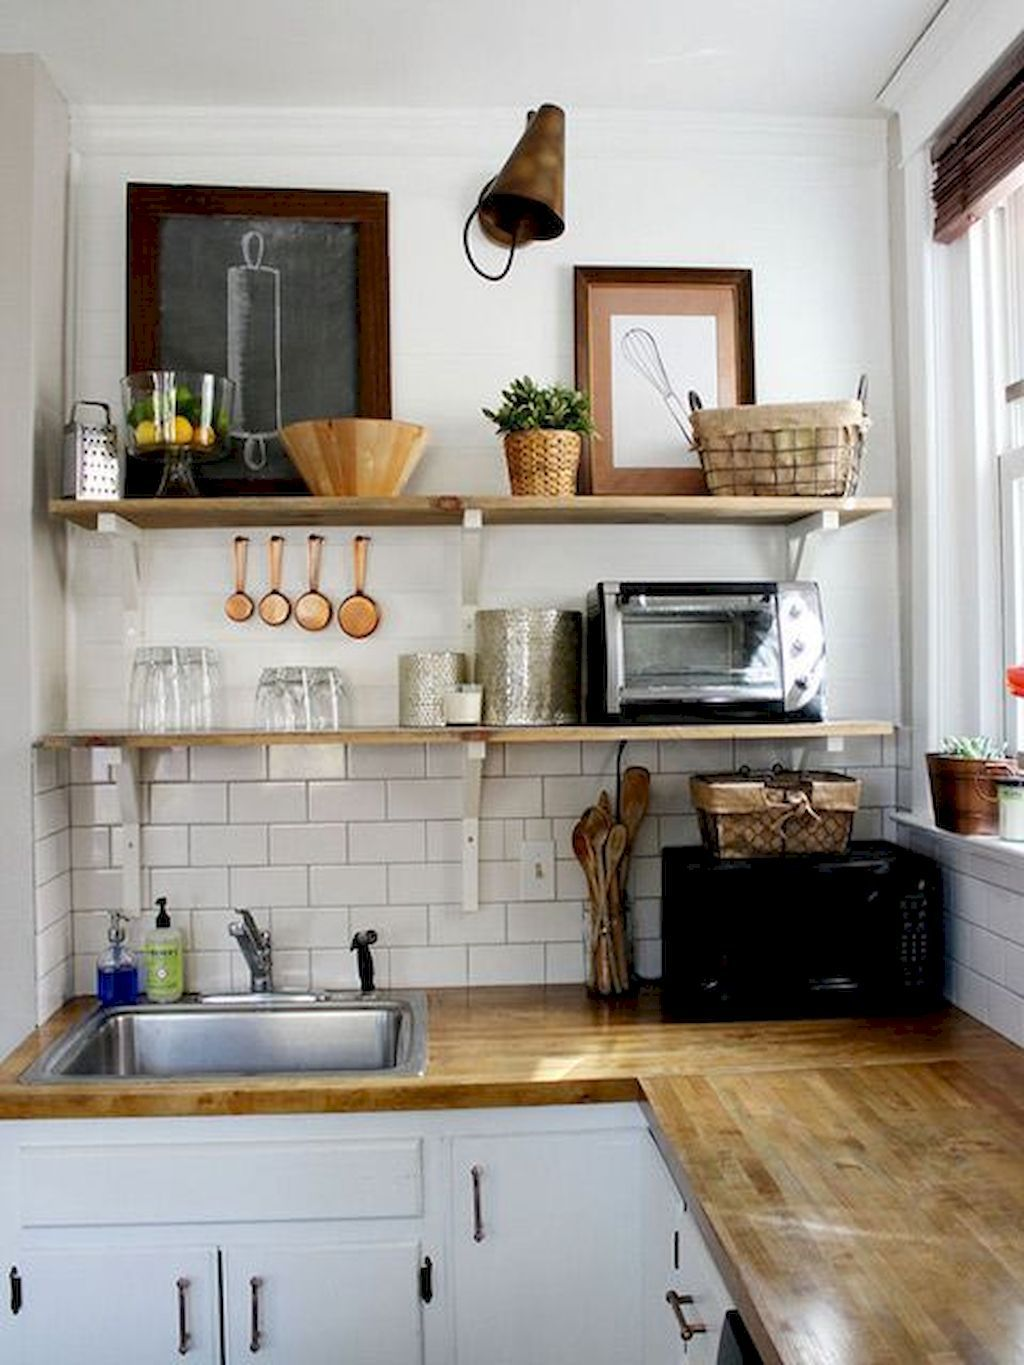 Amazing Small Kitchen Concepts For Your Snug Cooking Home ...